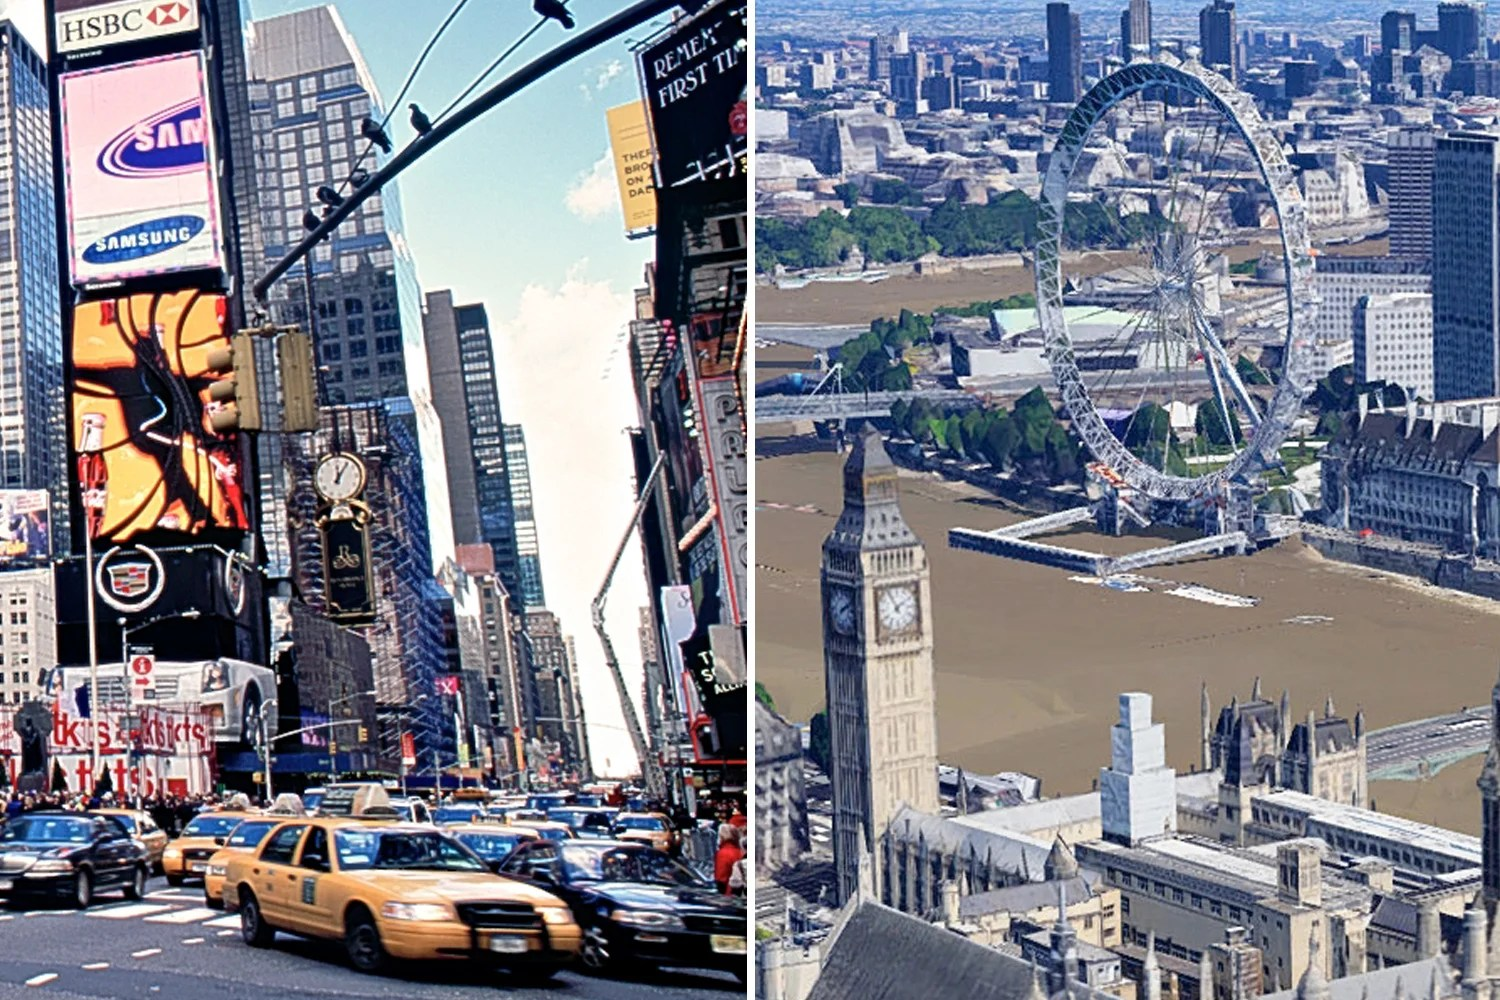 Edward Glaeser Two great cities  but London has the edge now over New York  London Evening